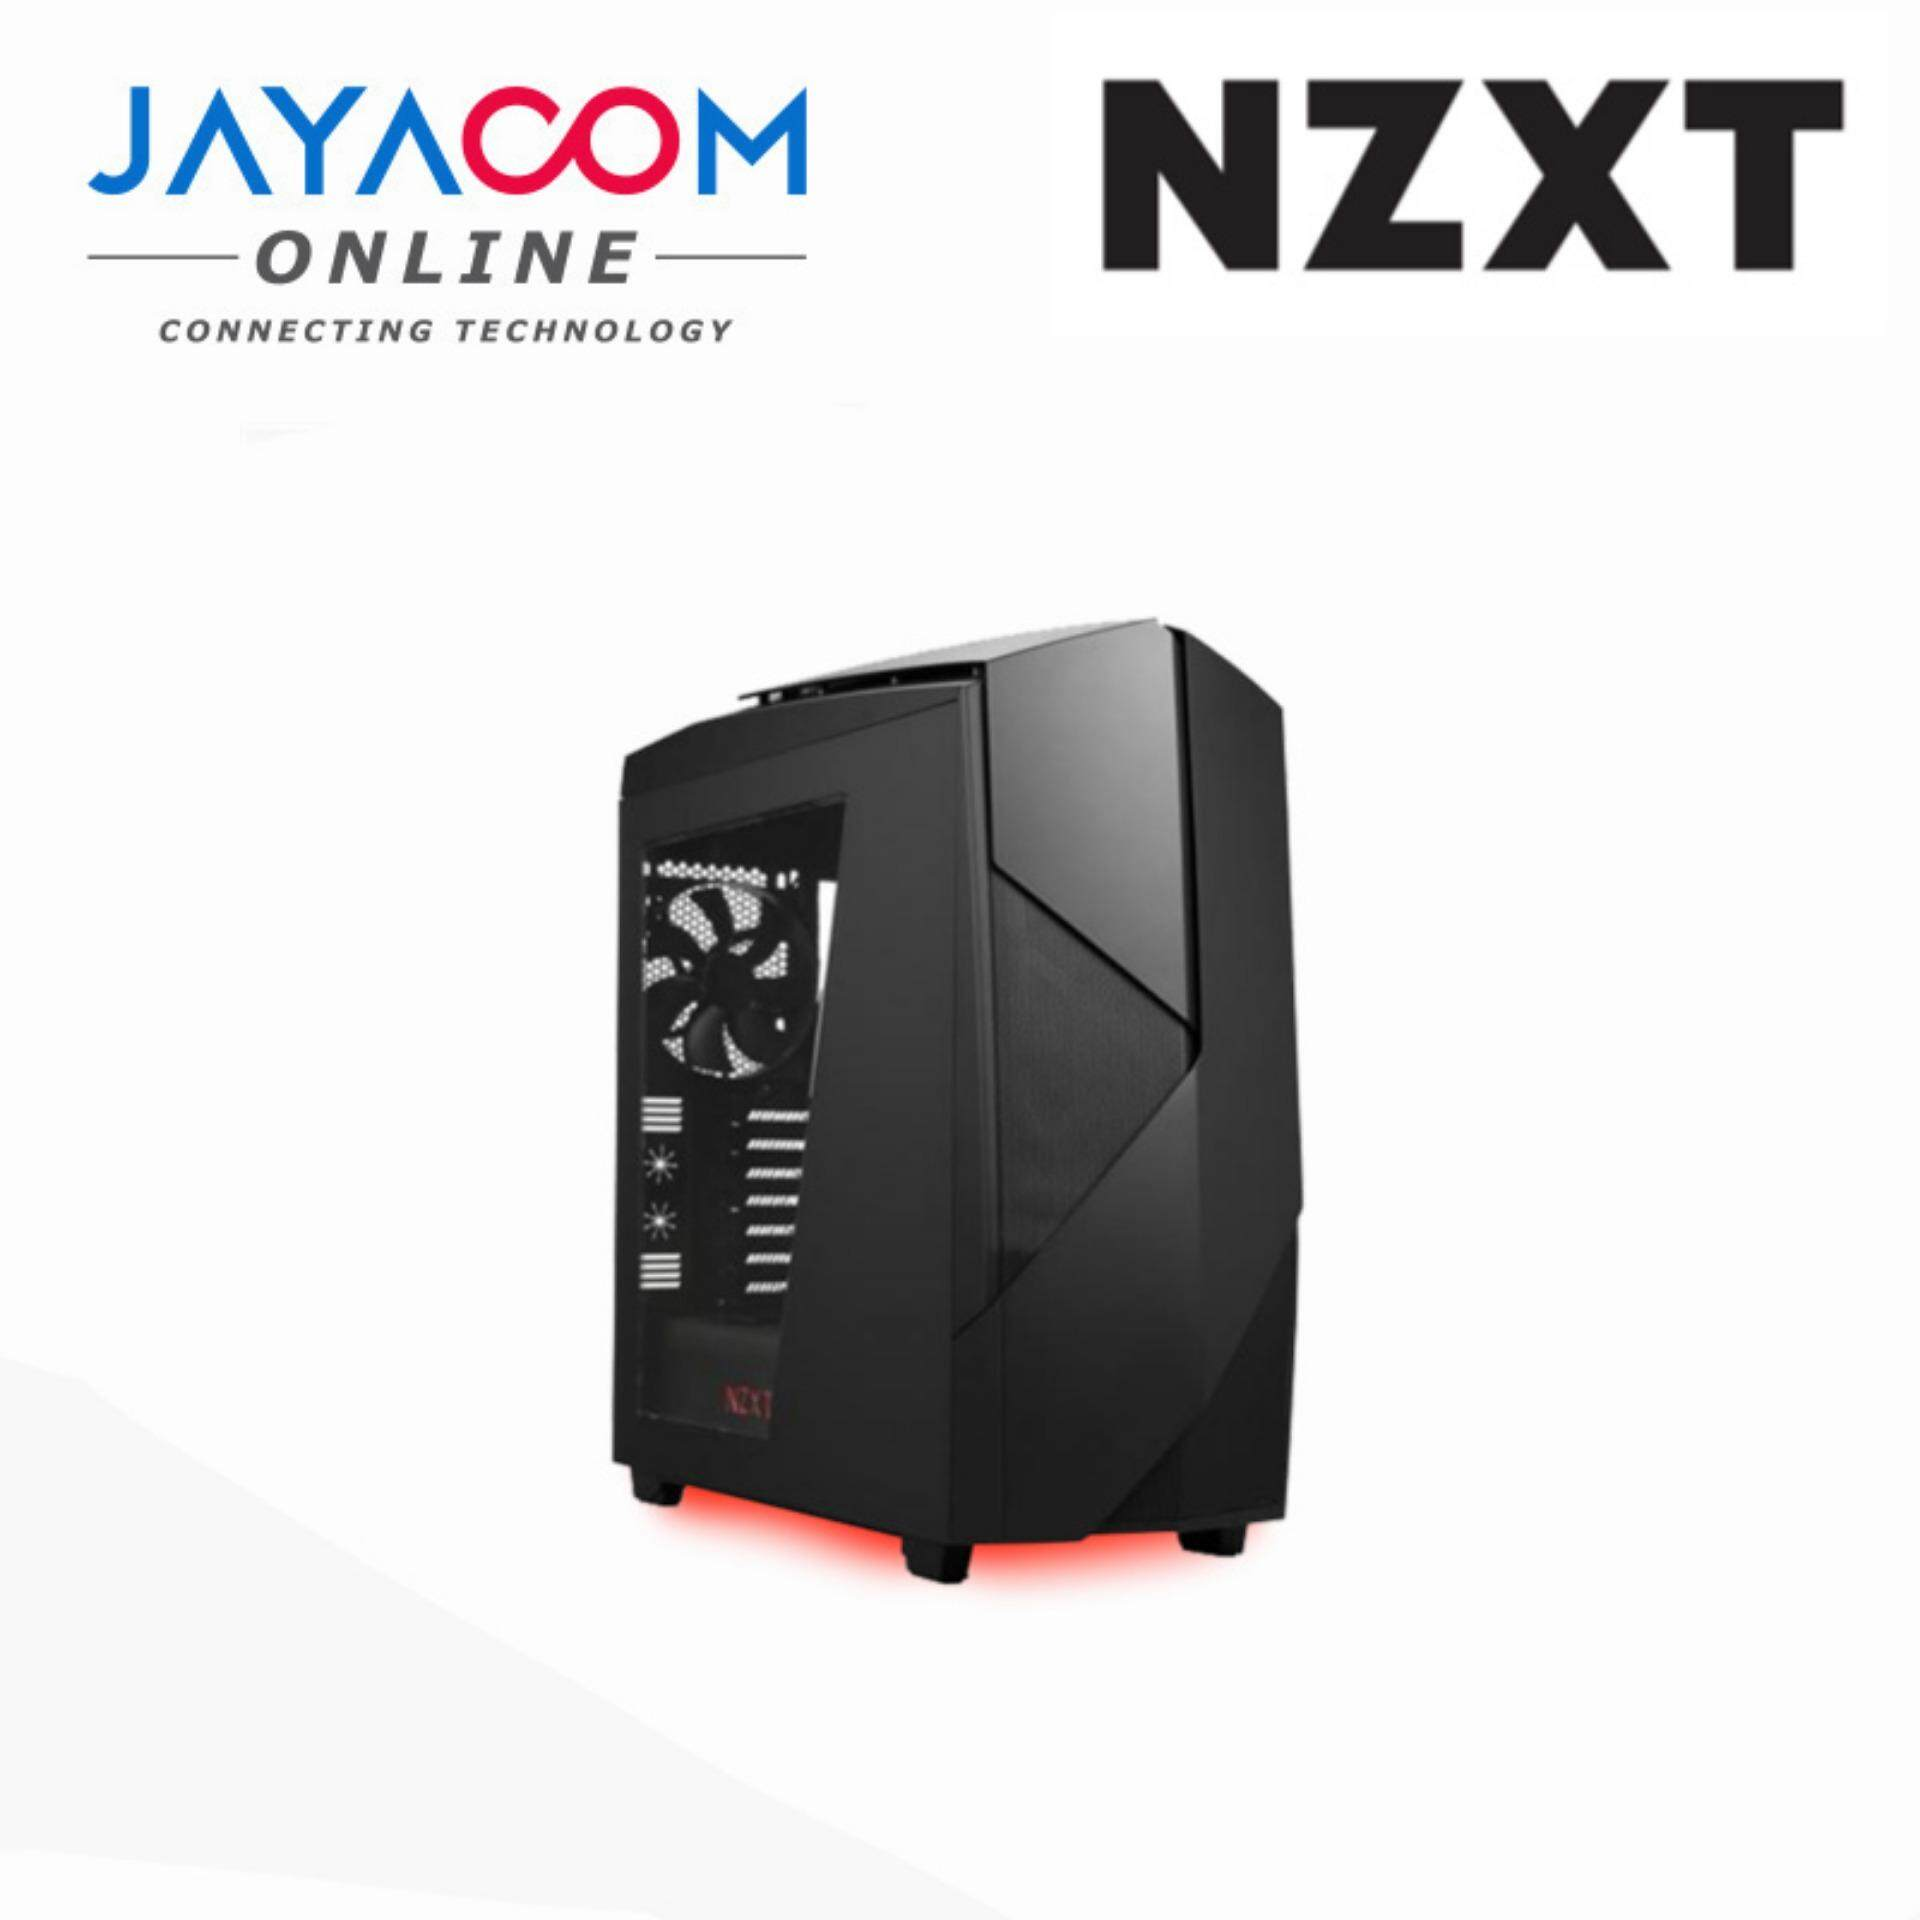 NZXT NOCTIS 450 ATX CASING BLACK Malaysia